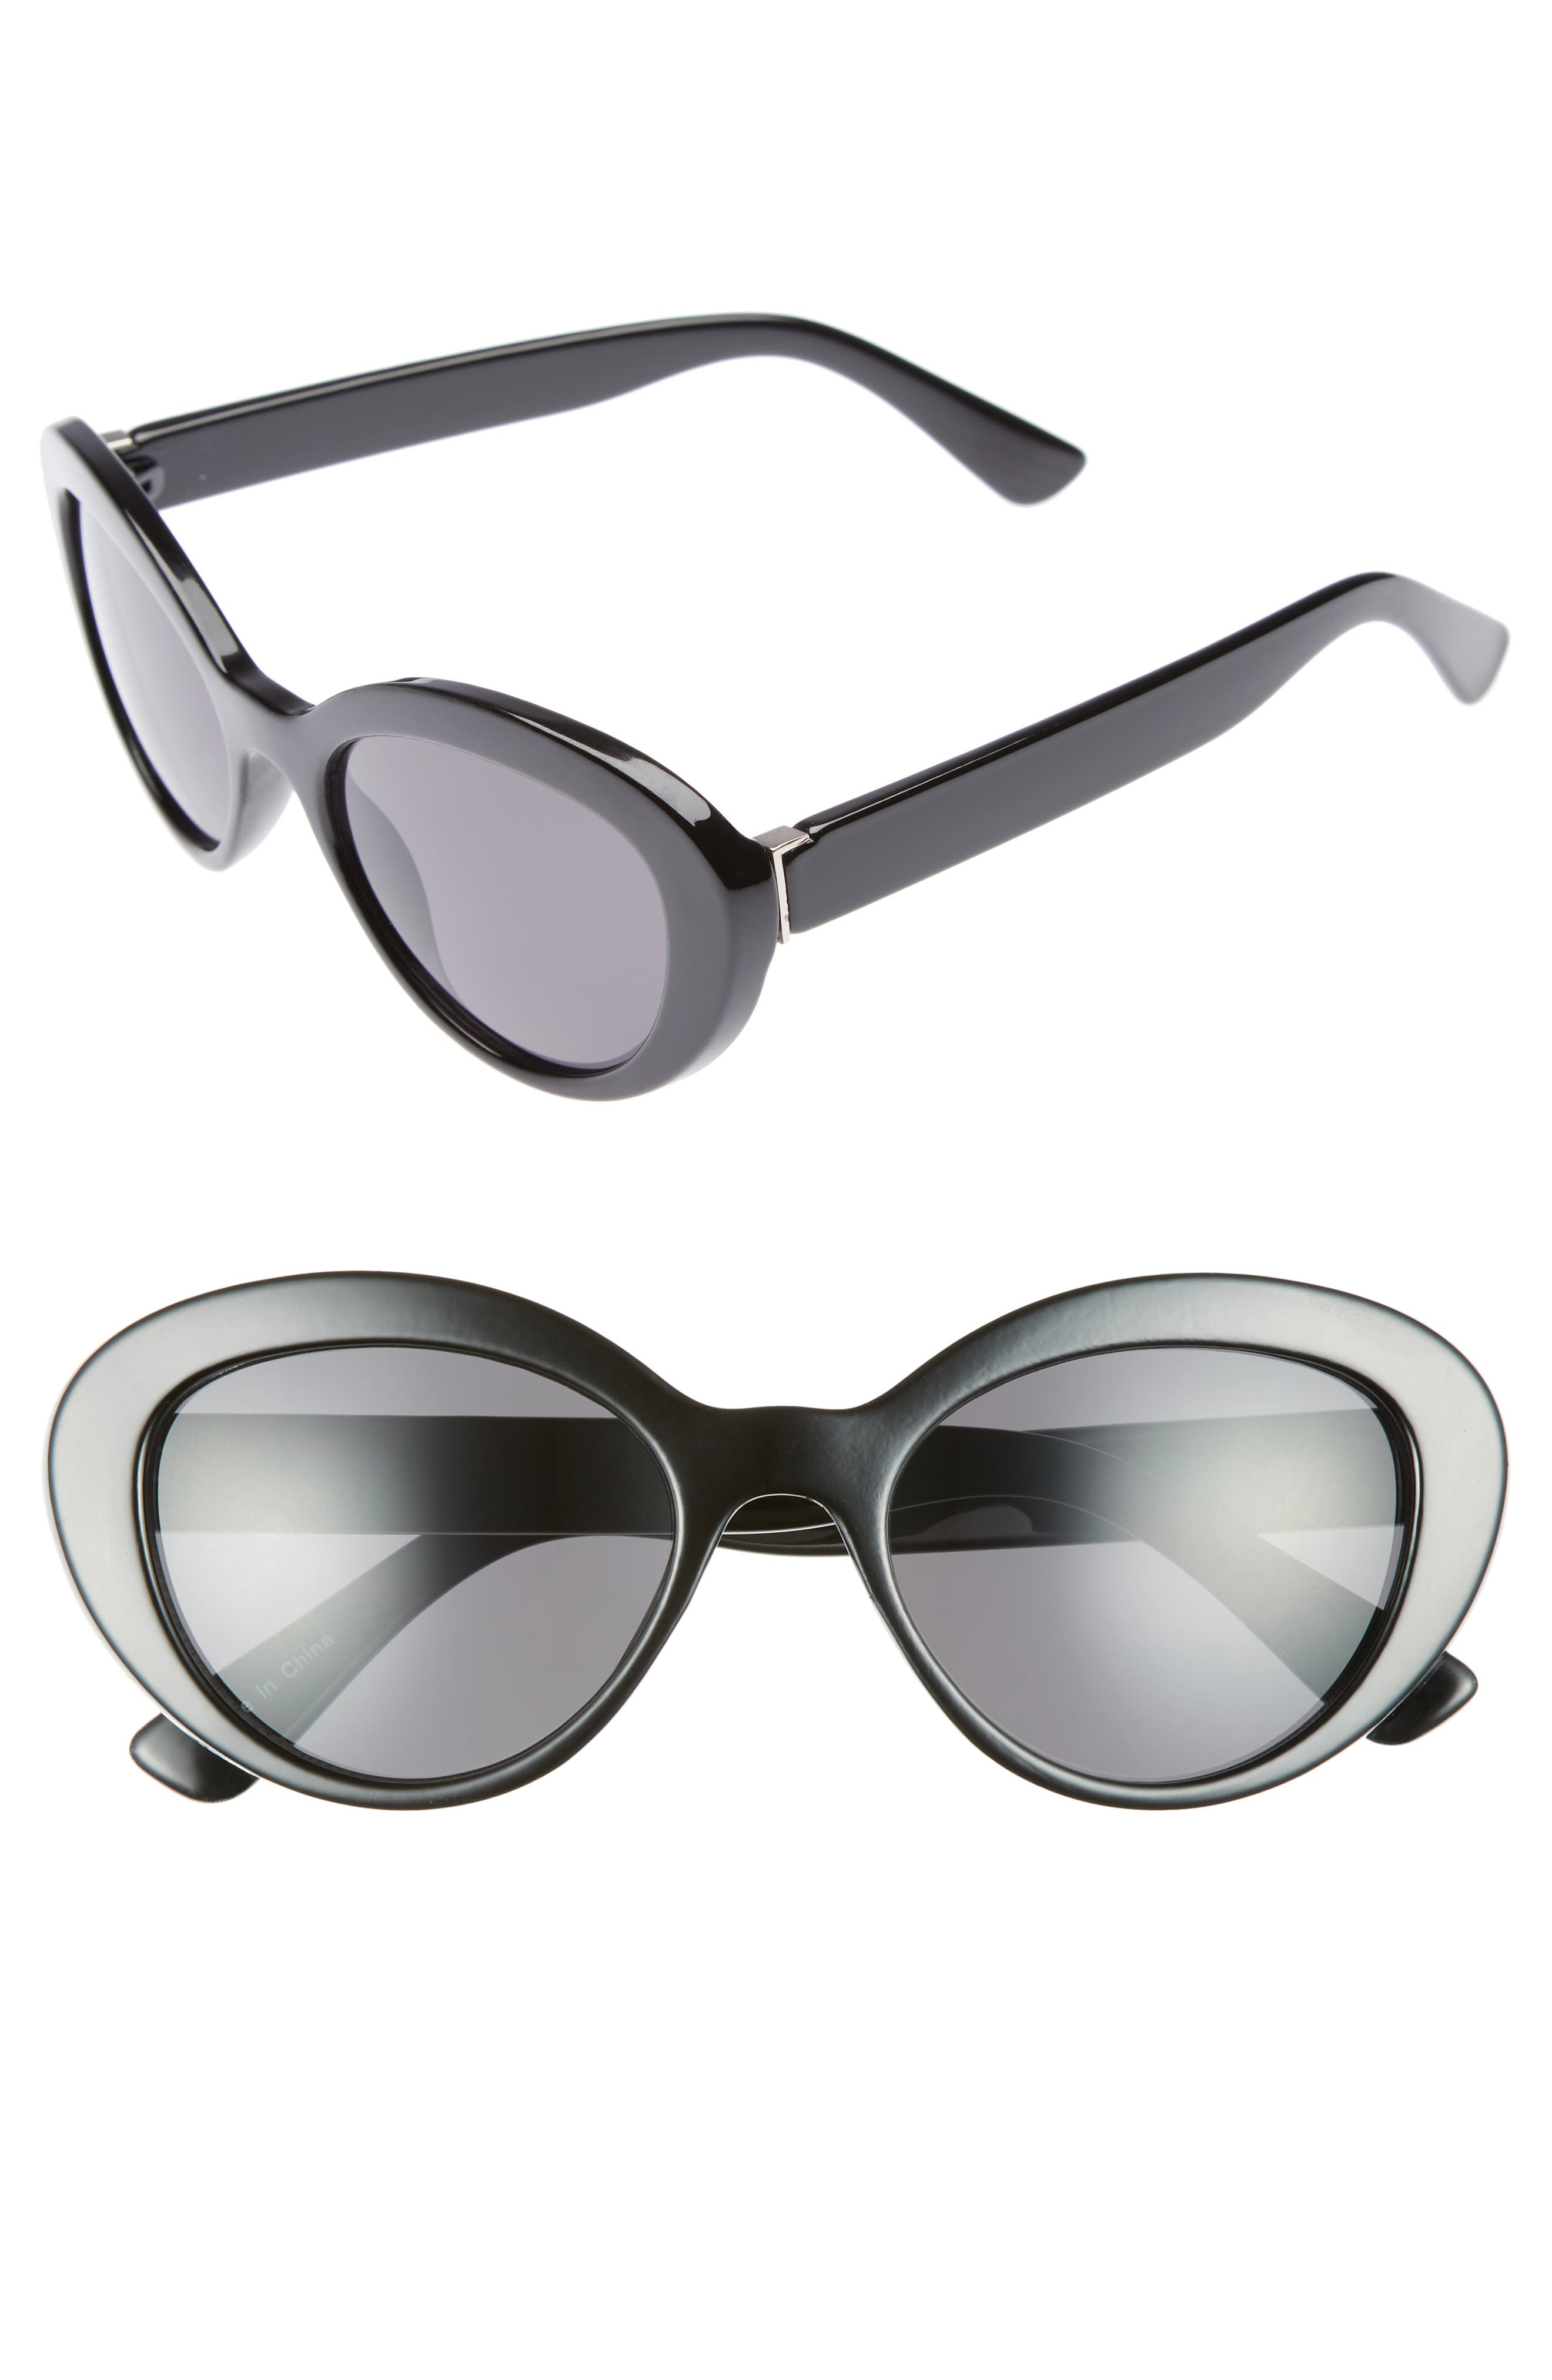 50mm Vintage Cat Eye Sunglasses,                         Main,                         color, 001